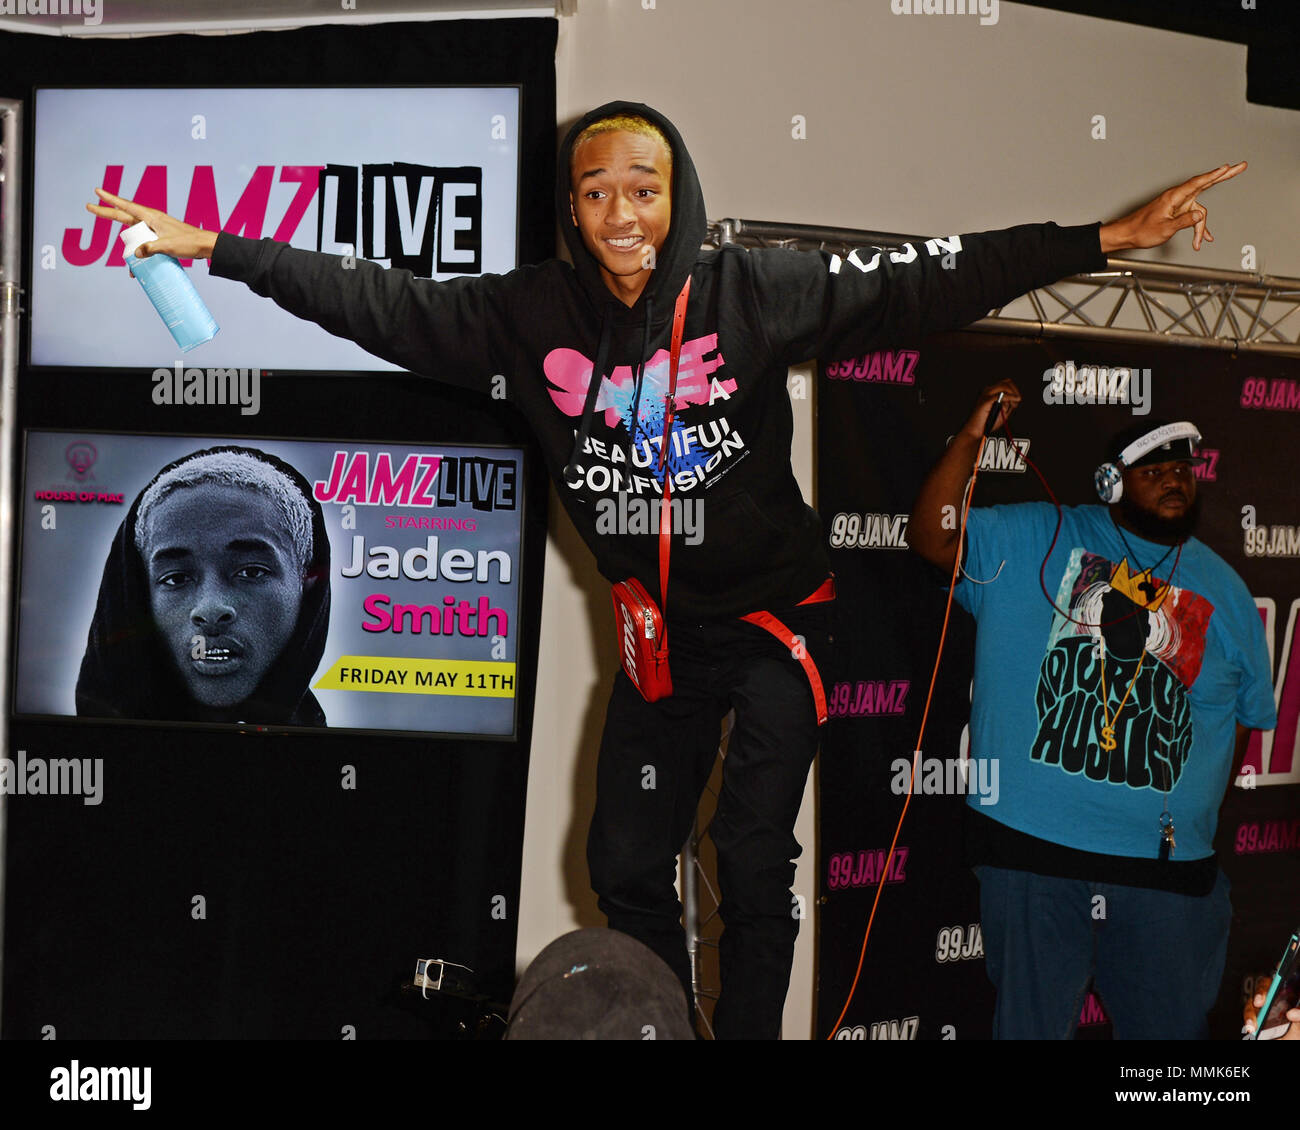 Jaden Smith Viists Jamz Live At Radio Station 99 On May 11 2018 In Hollywood Florida Credit Mpi04 Media Punch Alamy News